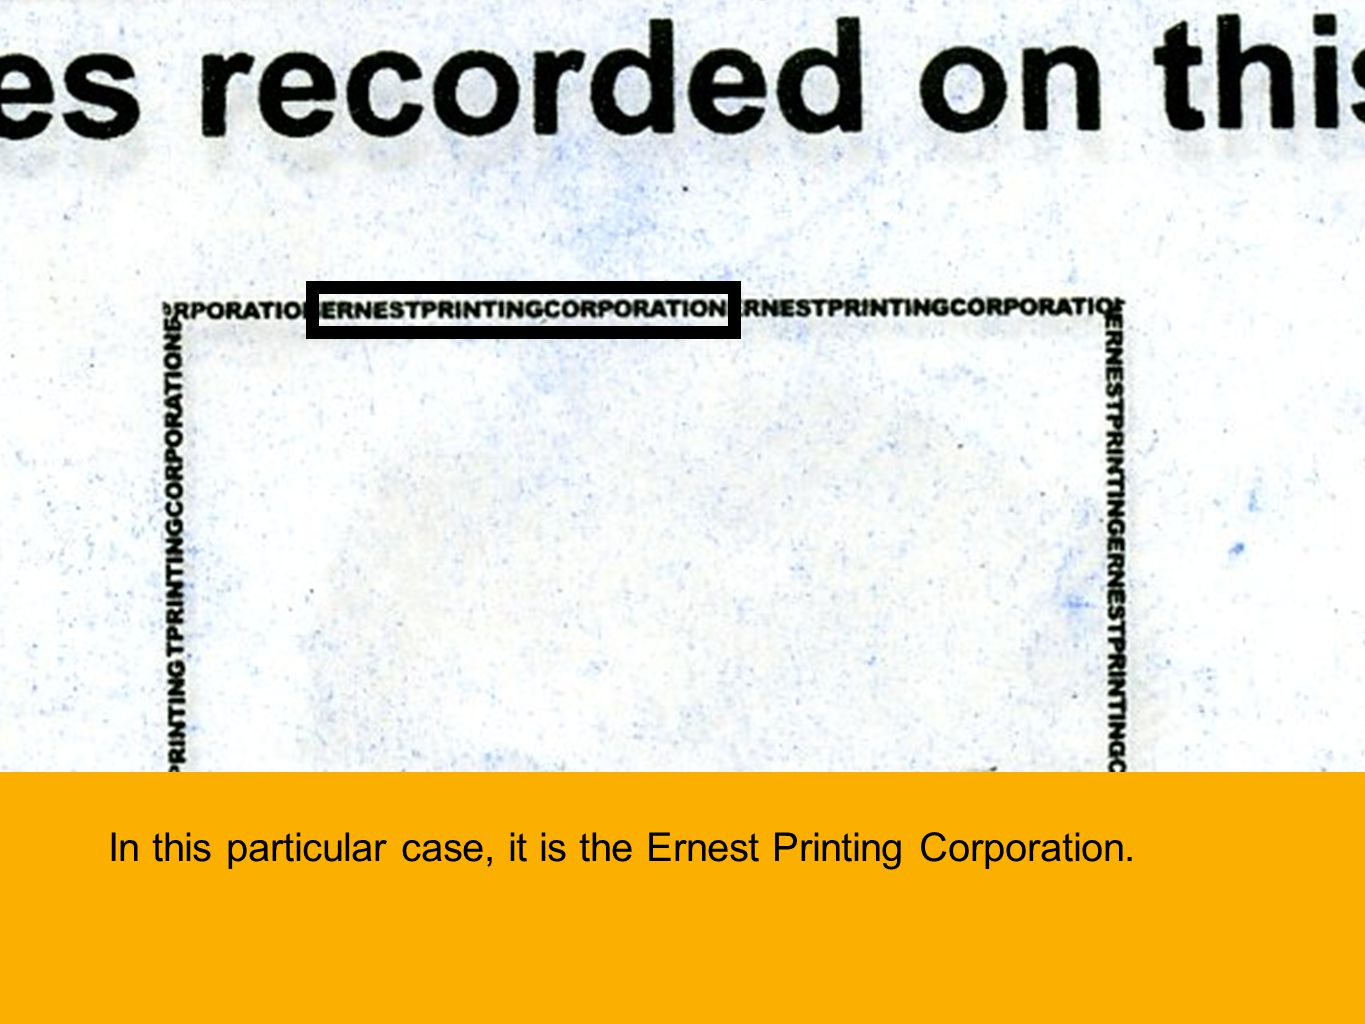 In this particular case, it is the Ernest Printing Corporation.